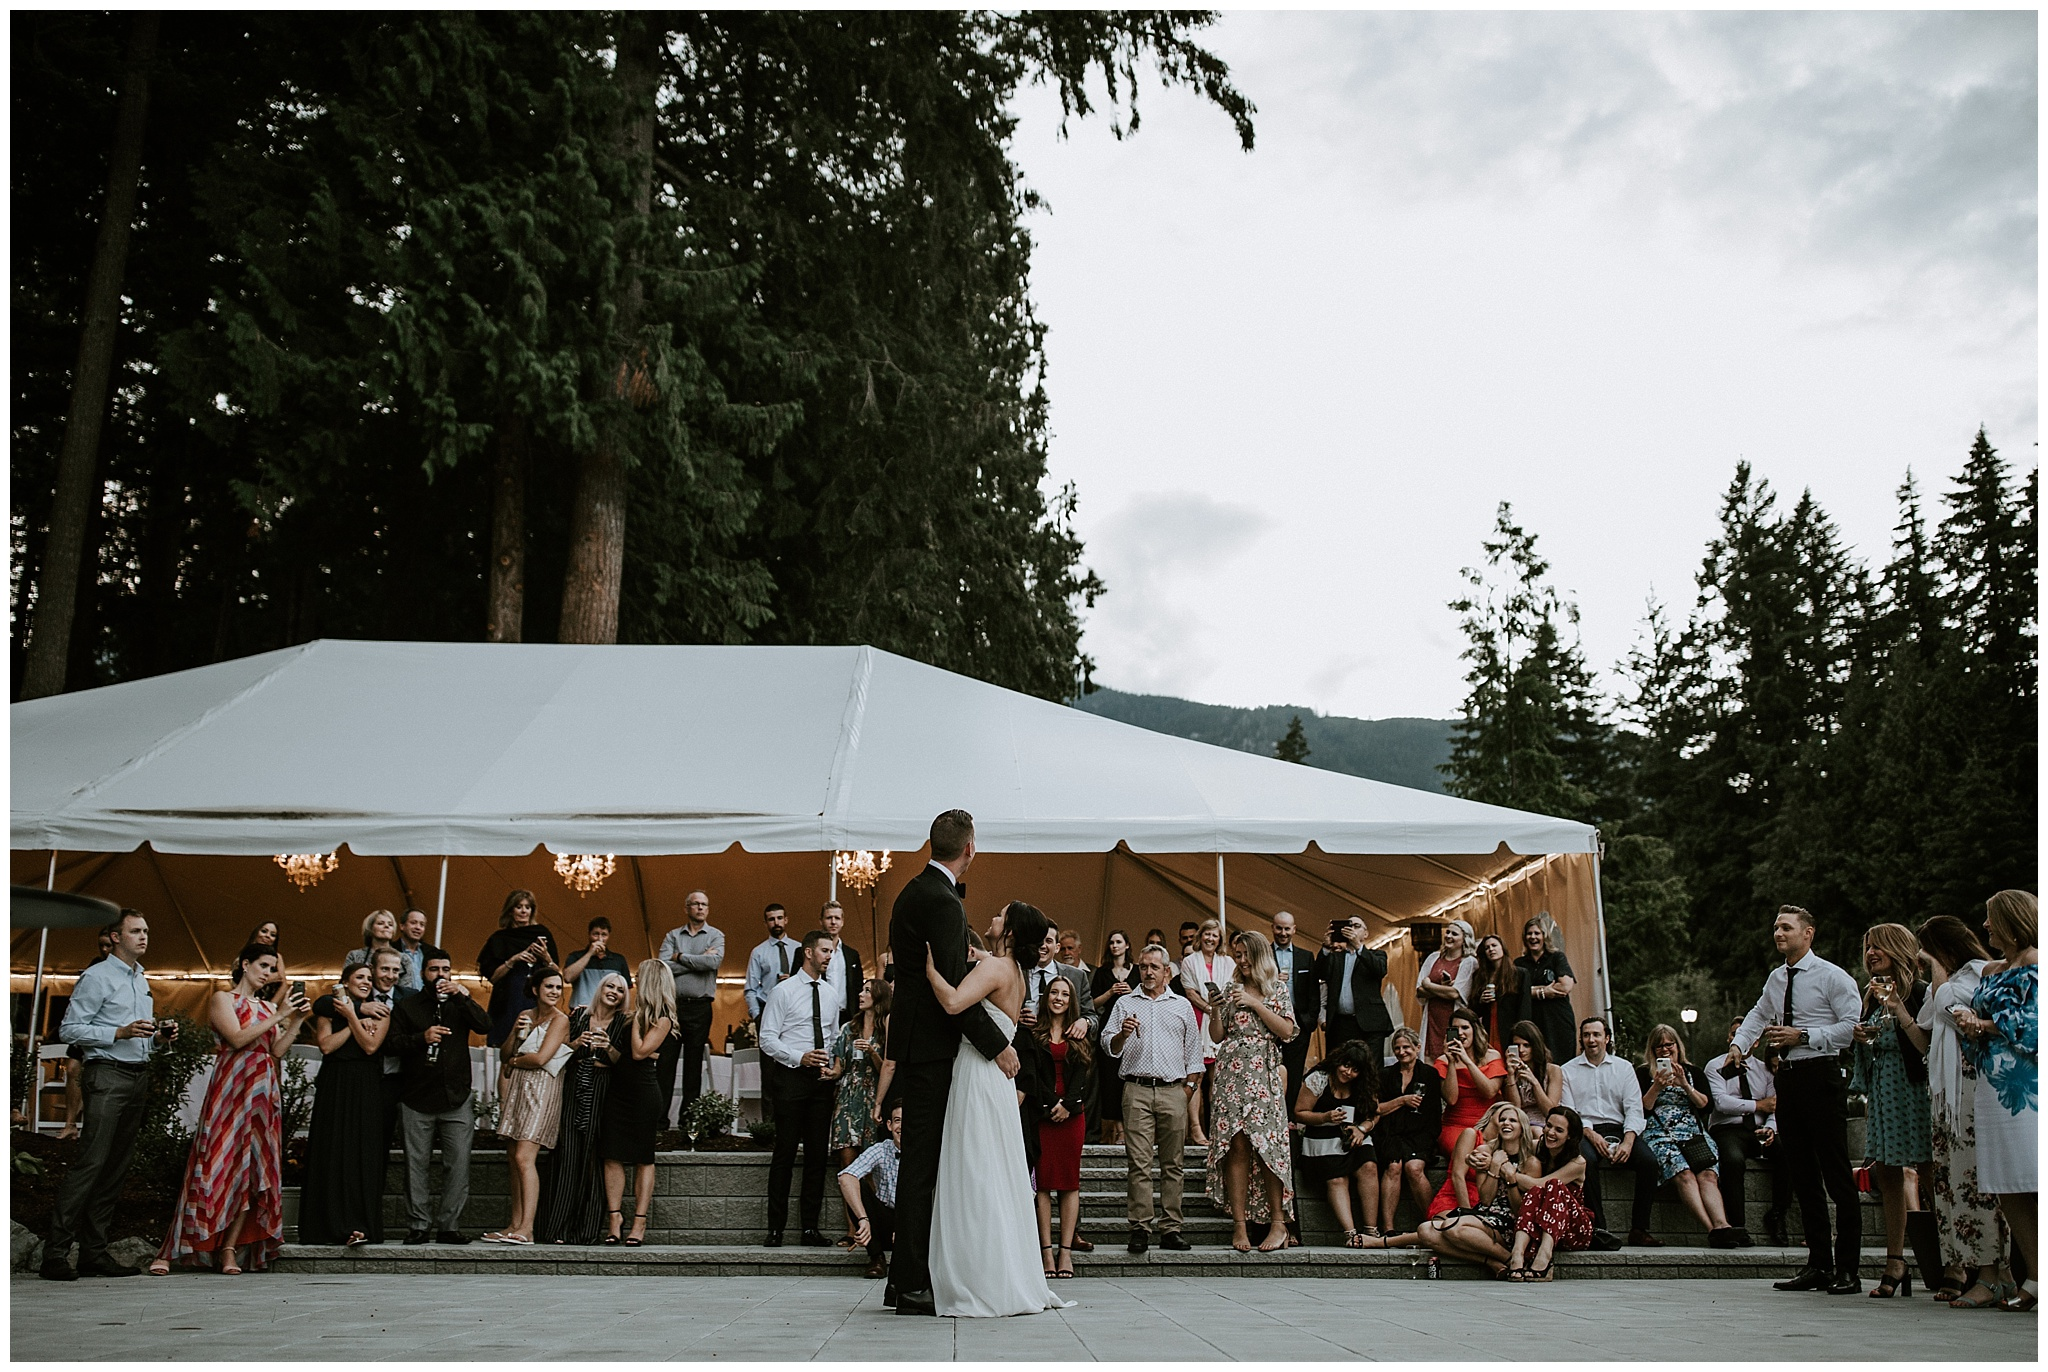 Bride and Groom's first dance in front of the tent at Rowena's Inn on the River